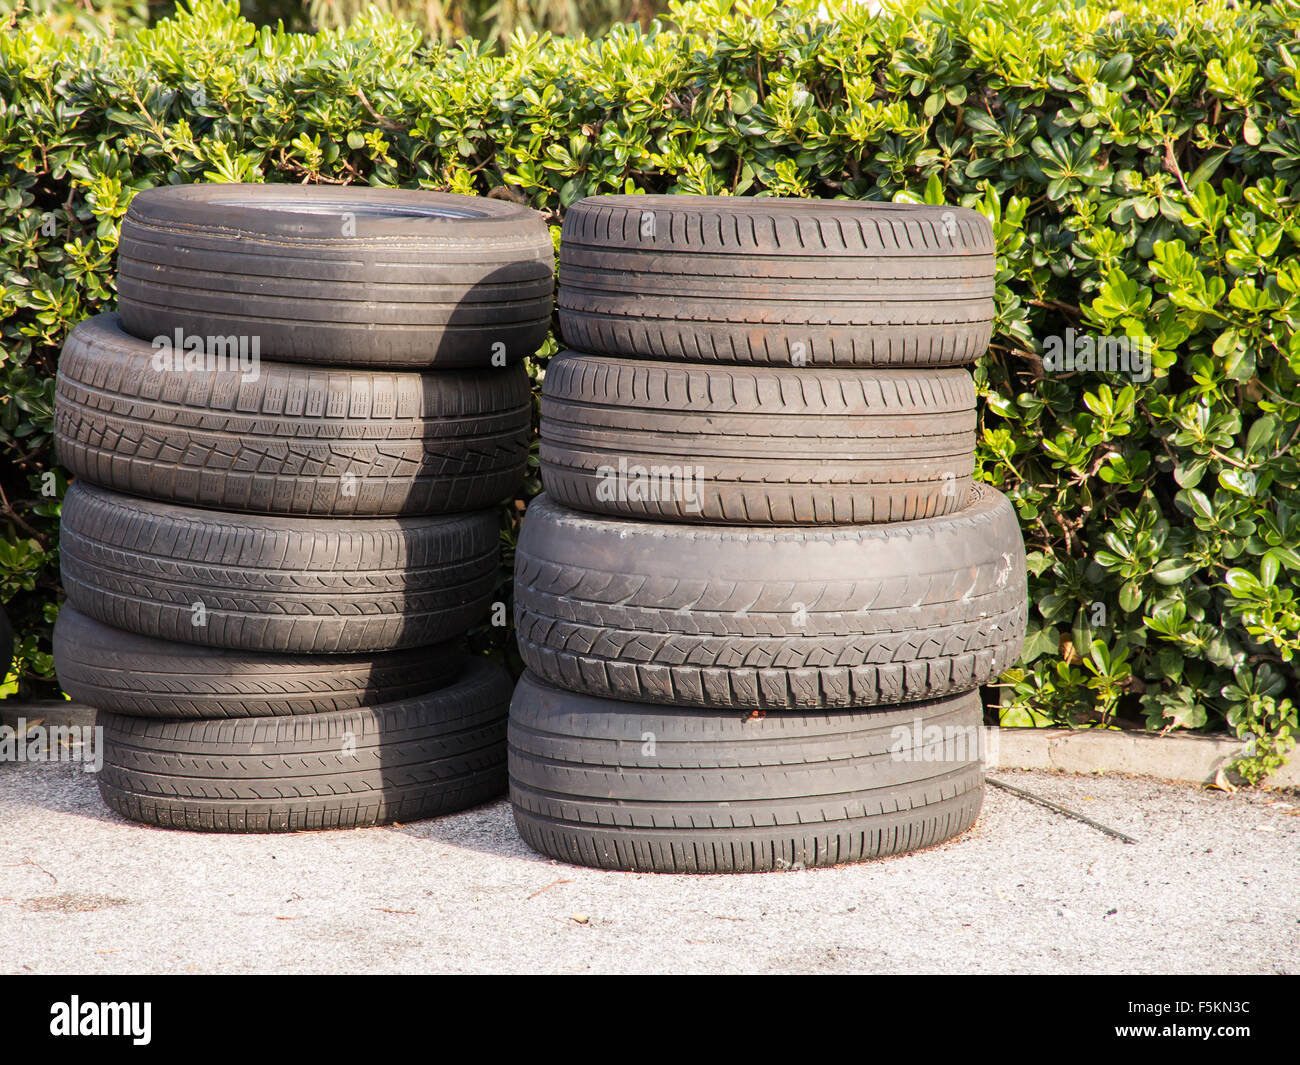 Pile of used worn out tyres green bushes in background - Stock Image